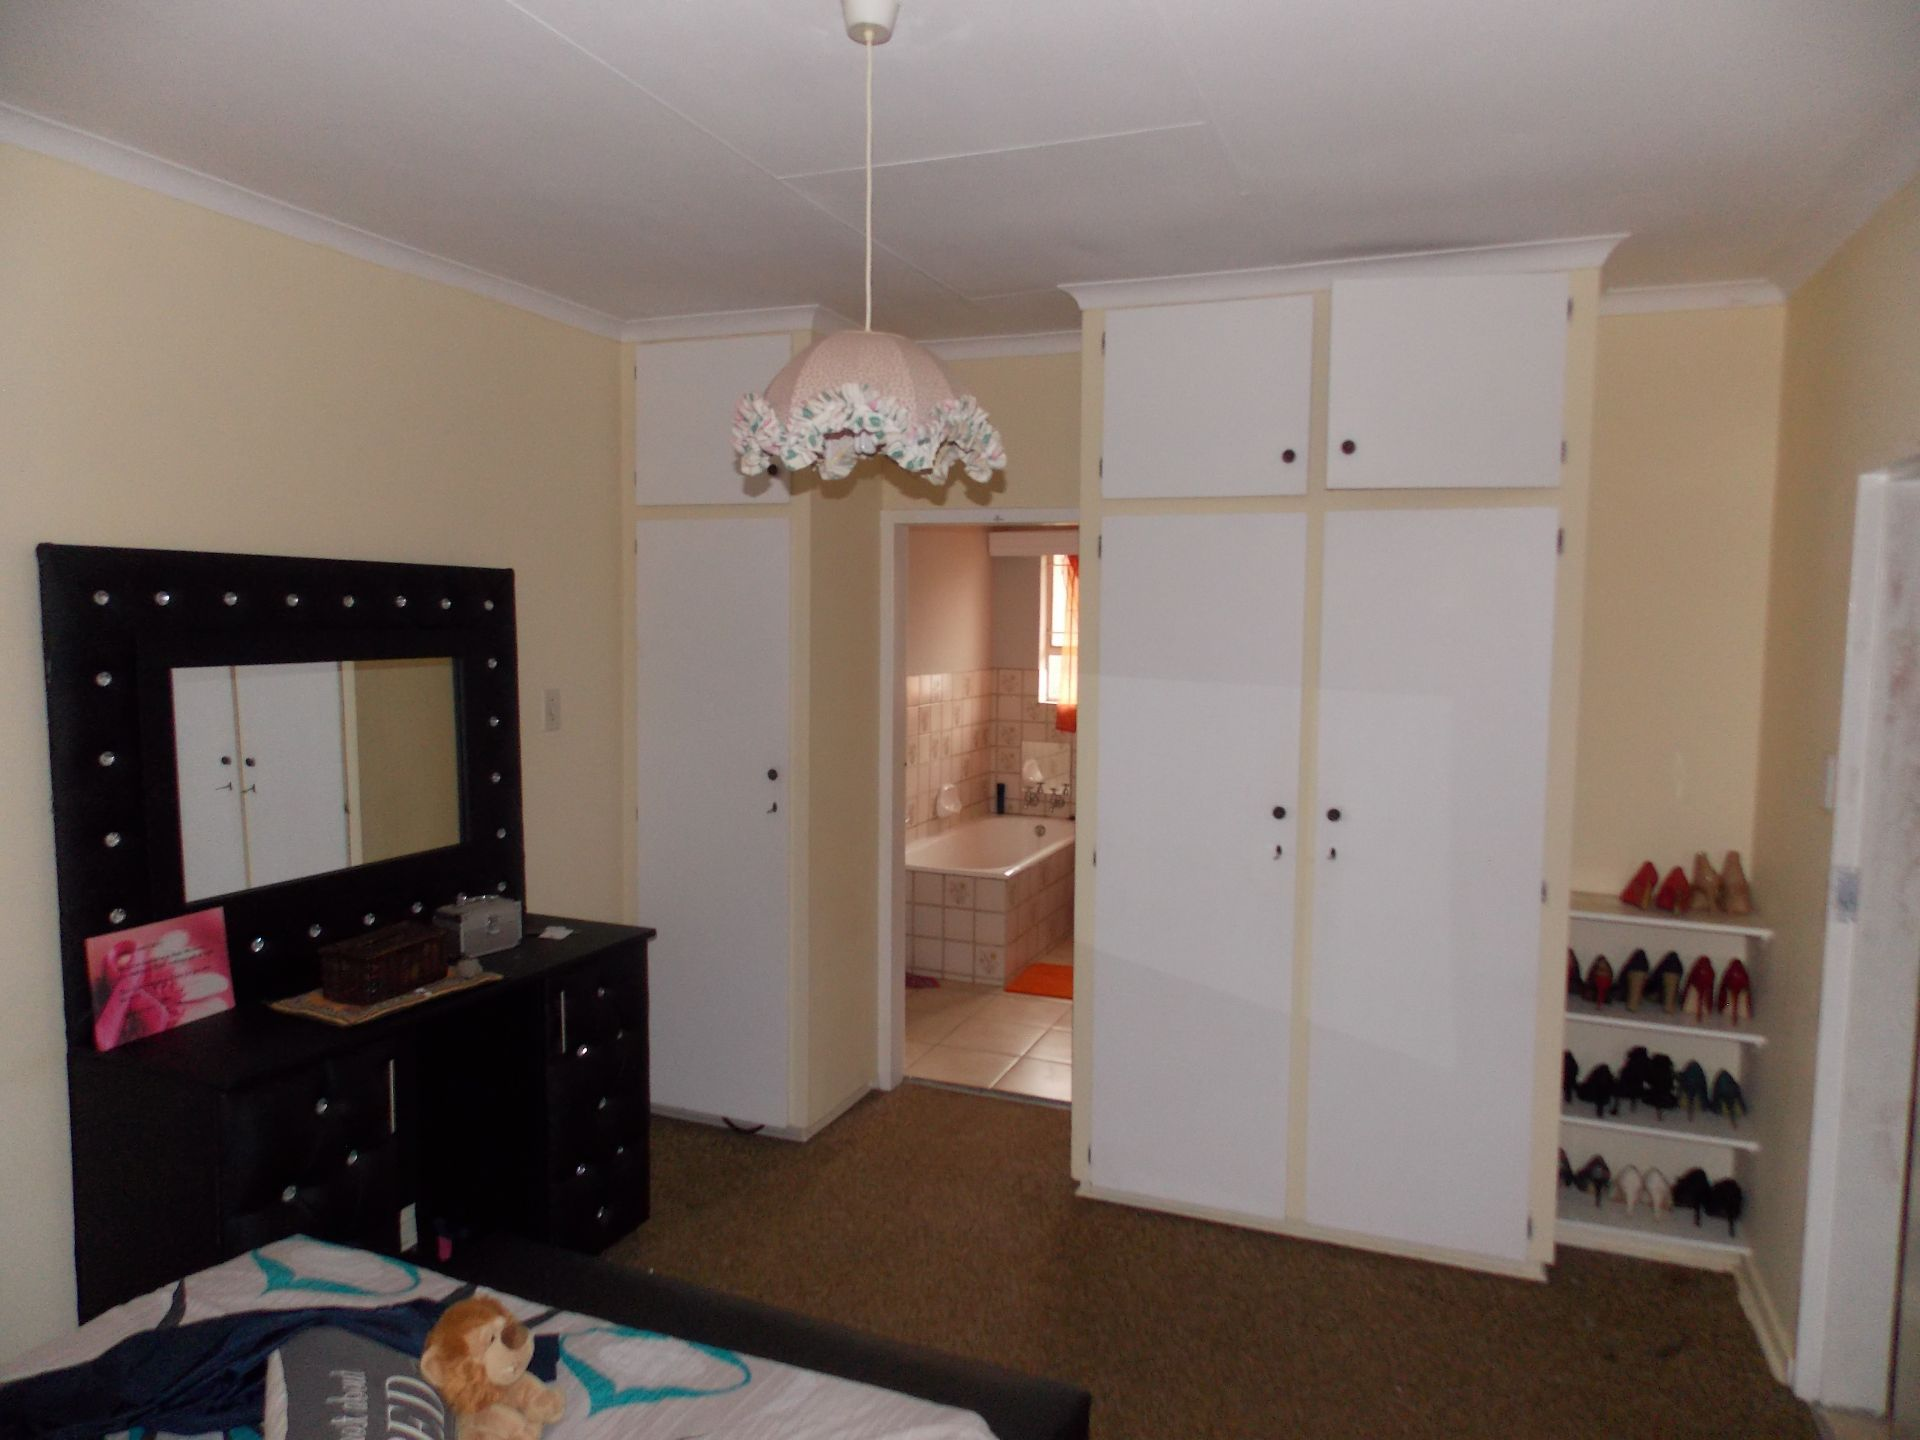 Potchefstroom Central property for sale. Ref No: 13449640. Picture no 19